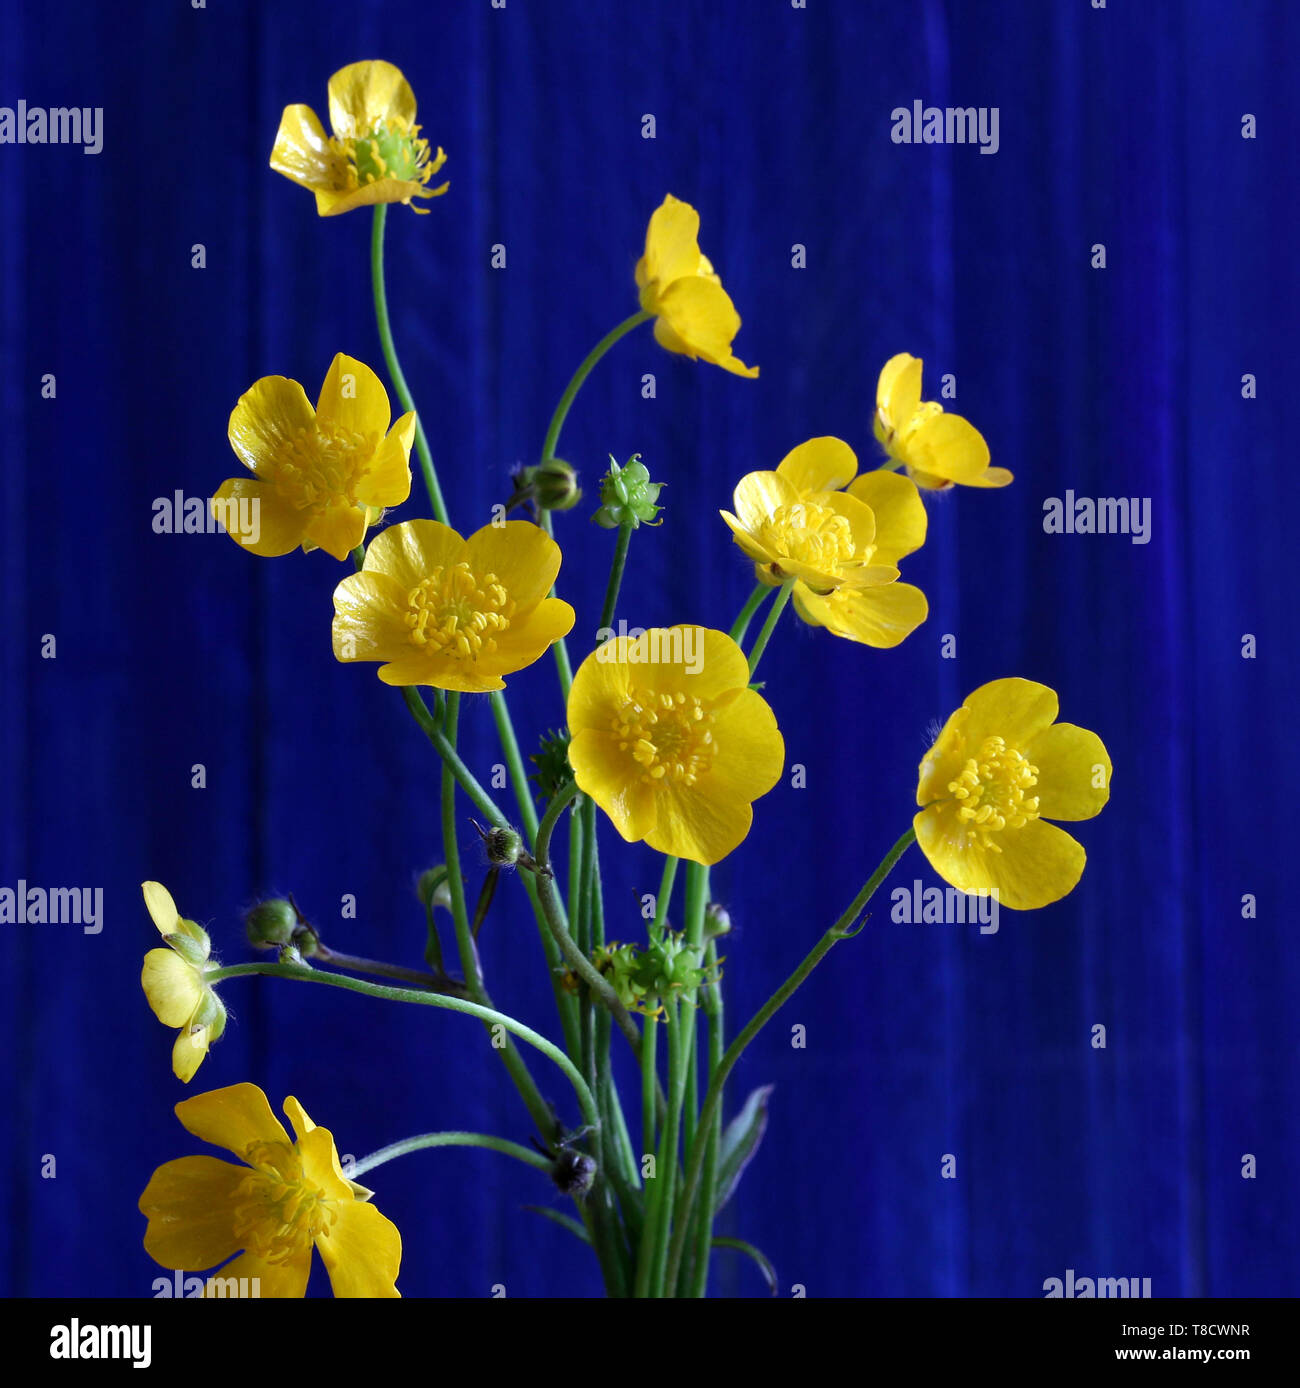 Bouquet of yellow wild flowers on blu background - Stock Image